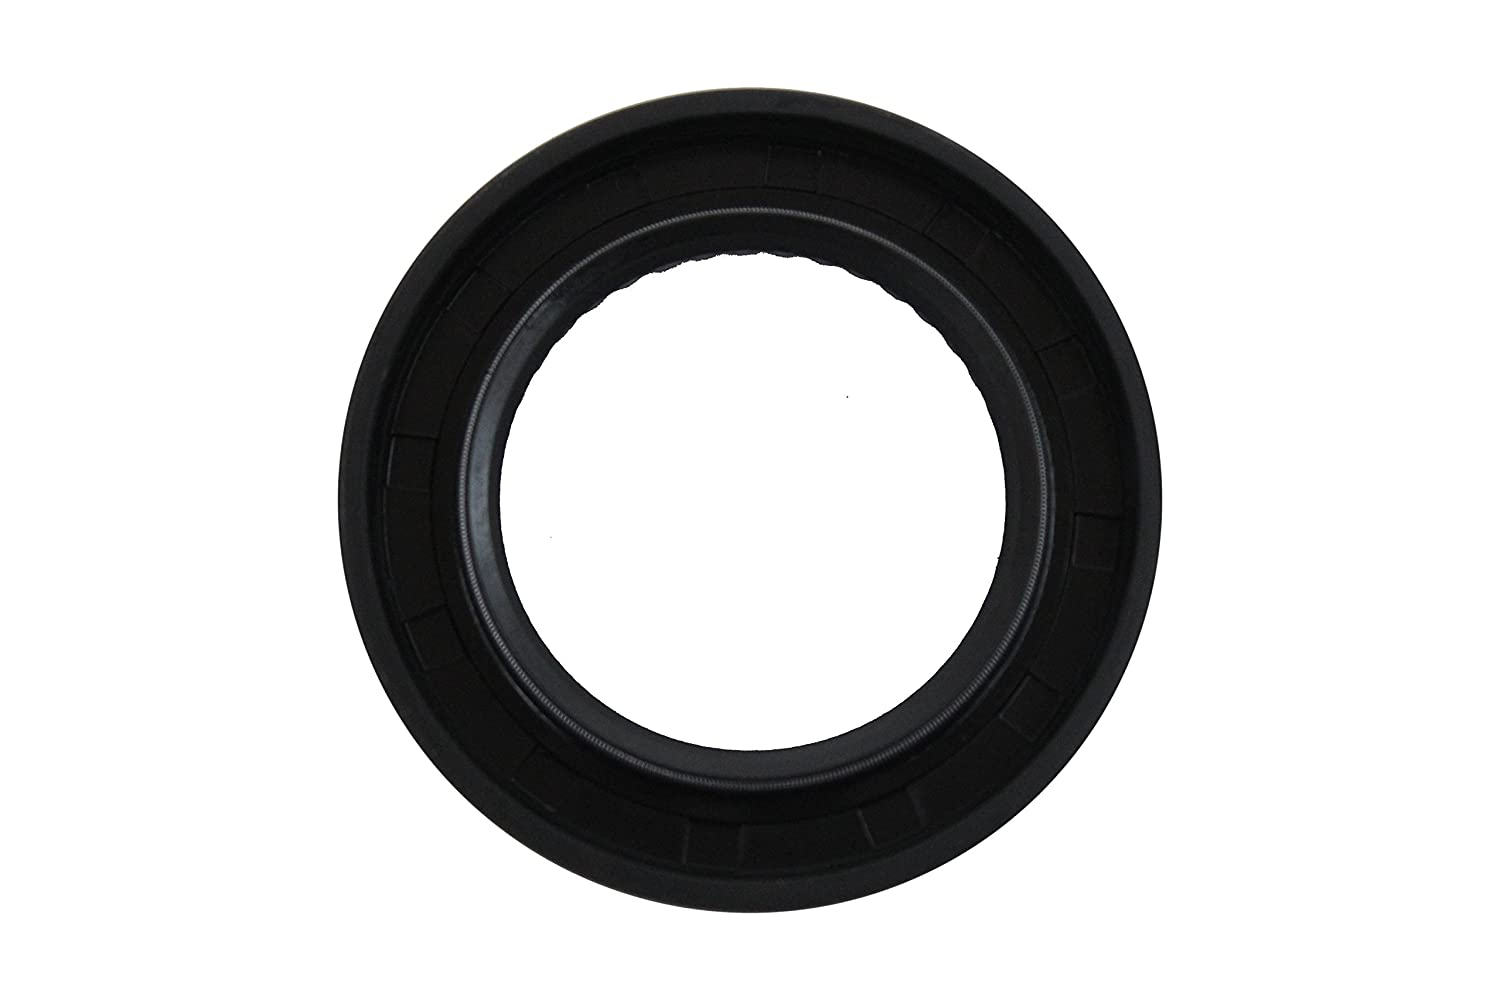 Genuine Acura 91205-PC9-711 Axle Shaft Oil Seal